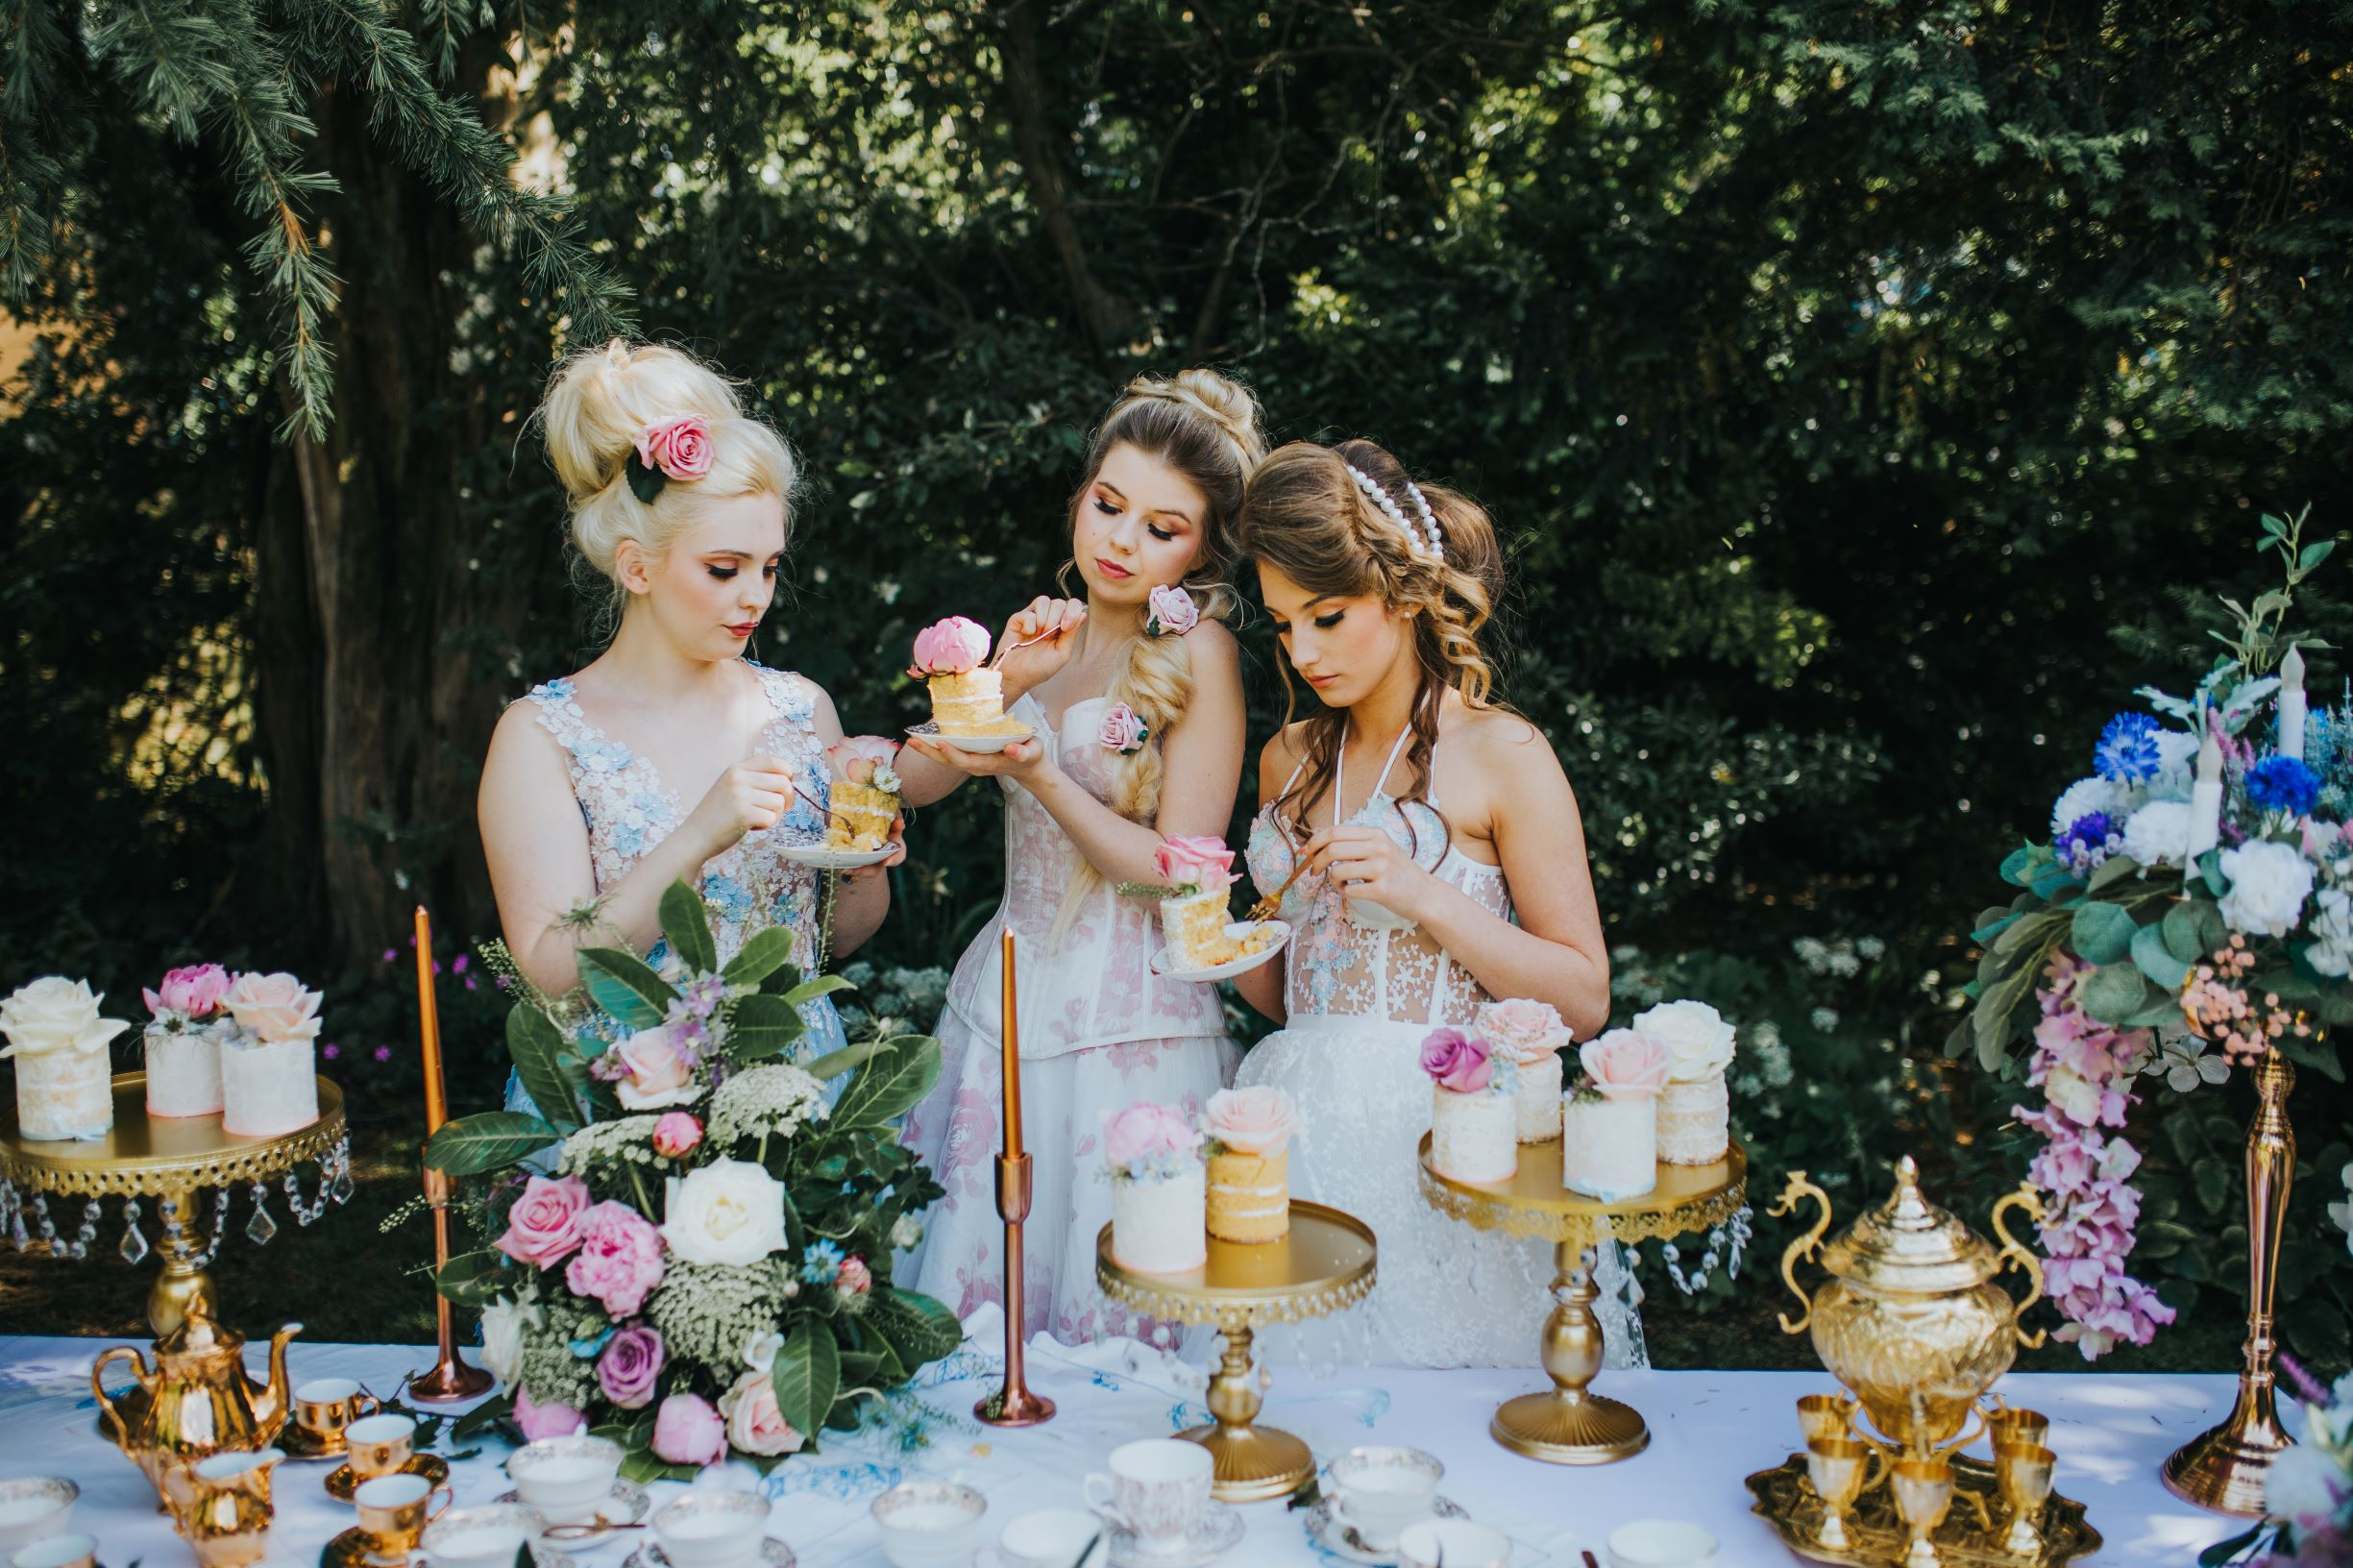 Whimsical wedding- Laura Beresford Photography- unconventional wedding- alternative wedding- brides eating cake- wedding dessert table- unique wedding cake- alternative bridalwear